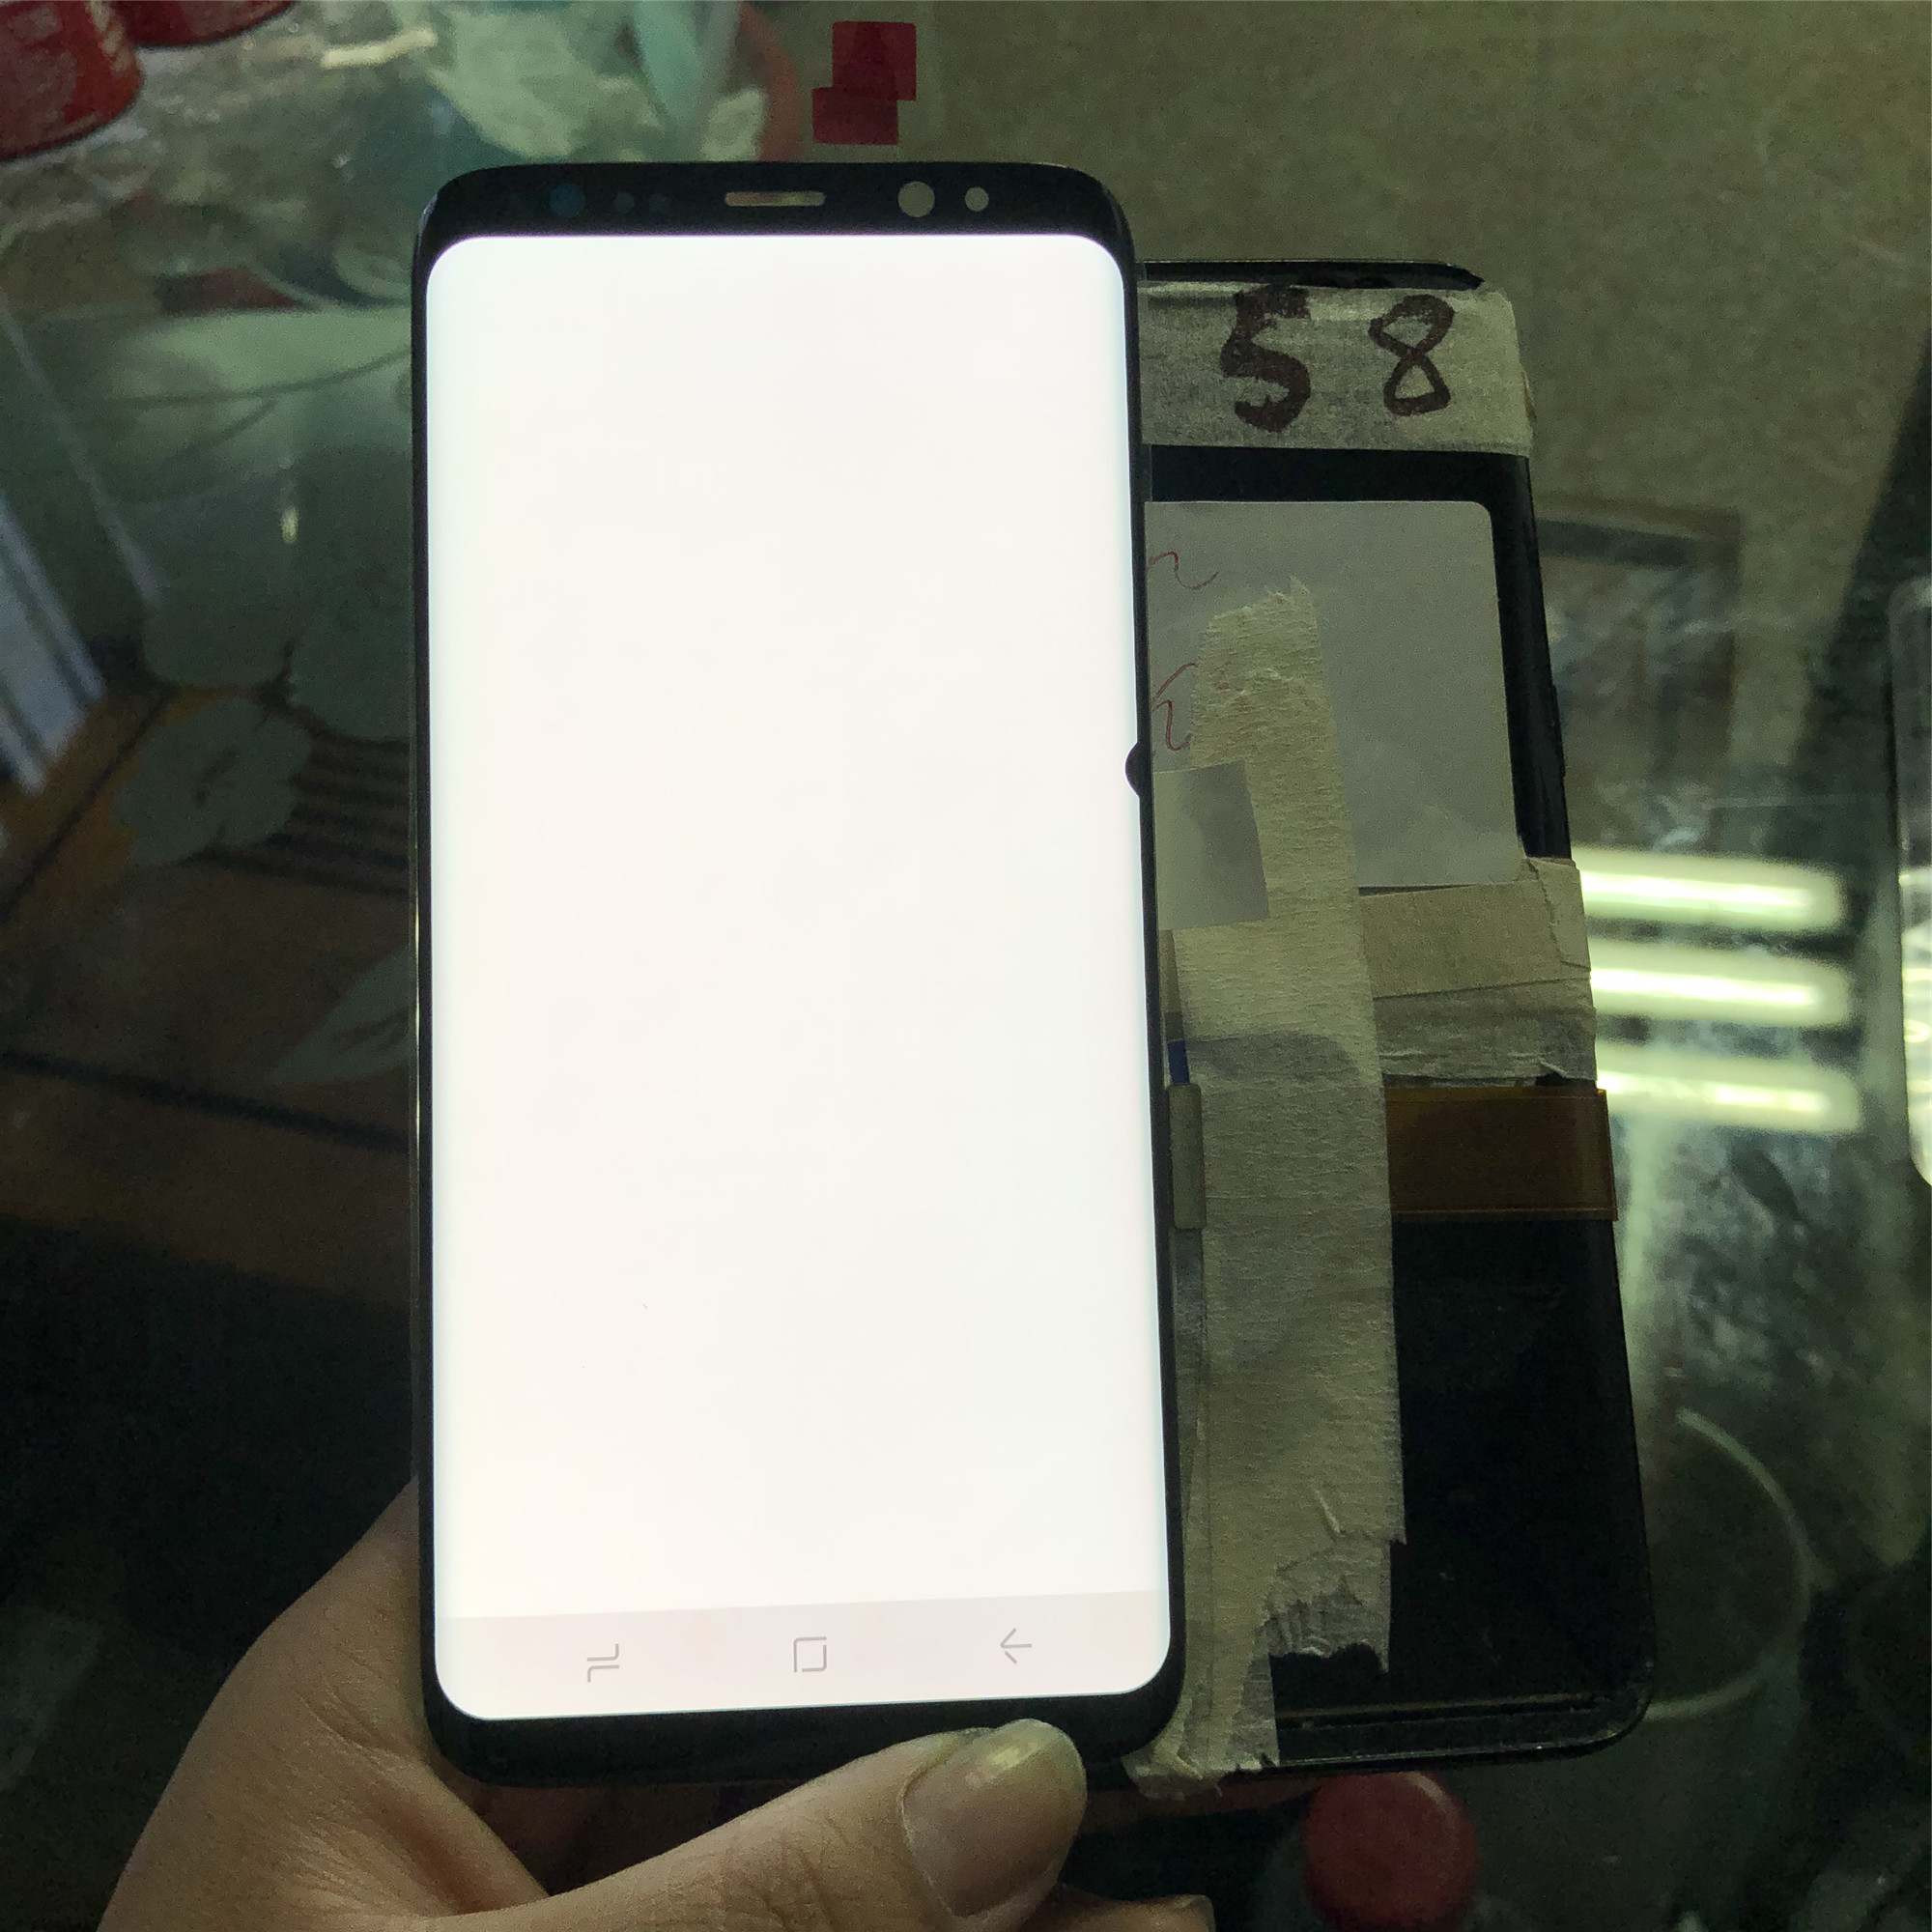 LCD Replacement For <font><b>Samsung</b></font> Galaxy <font><b>S8</b></font> G950 G950F G950U <font><b>G950FD</b></font> LCD <font><b>Display</b></font> Touch Screen Digitizer with dead pixel image